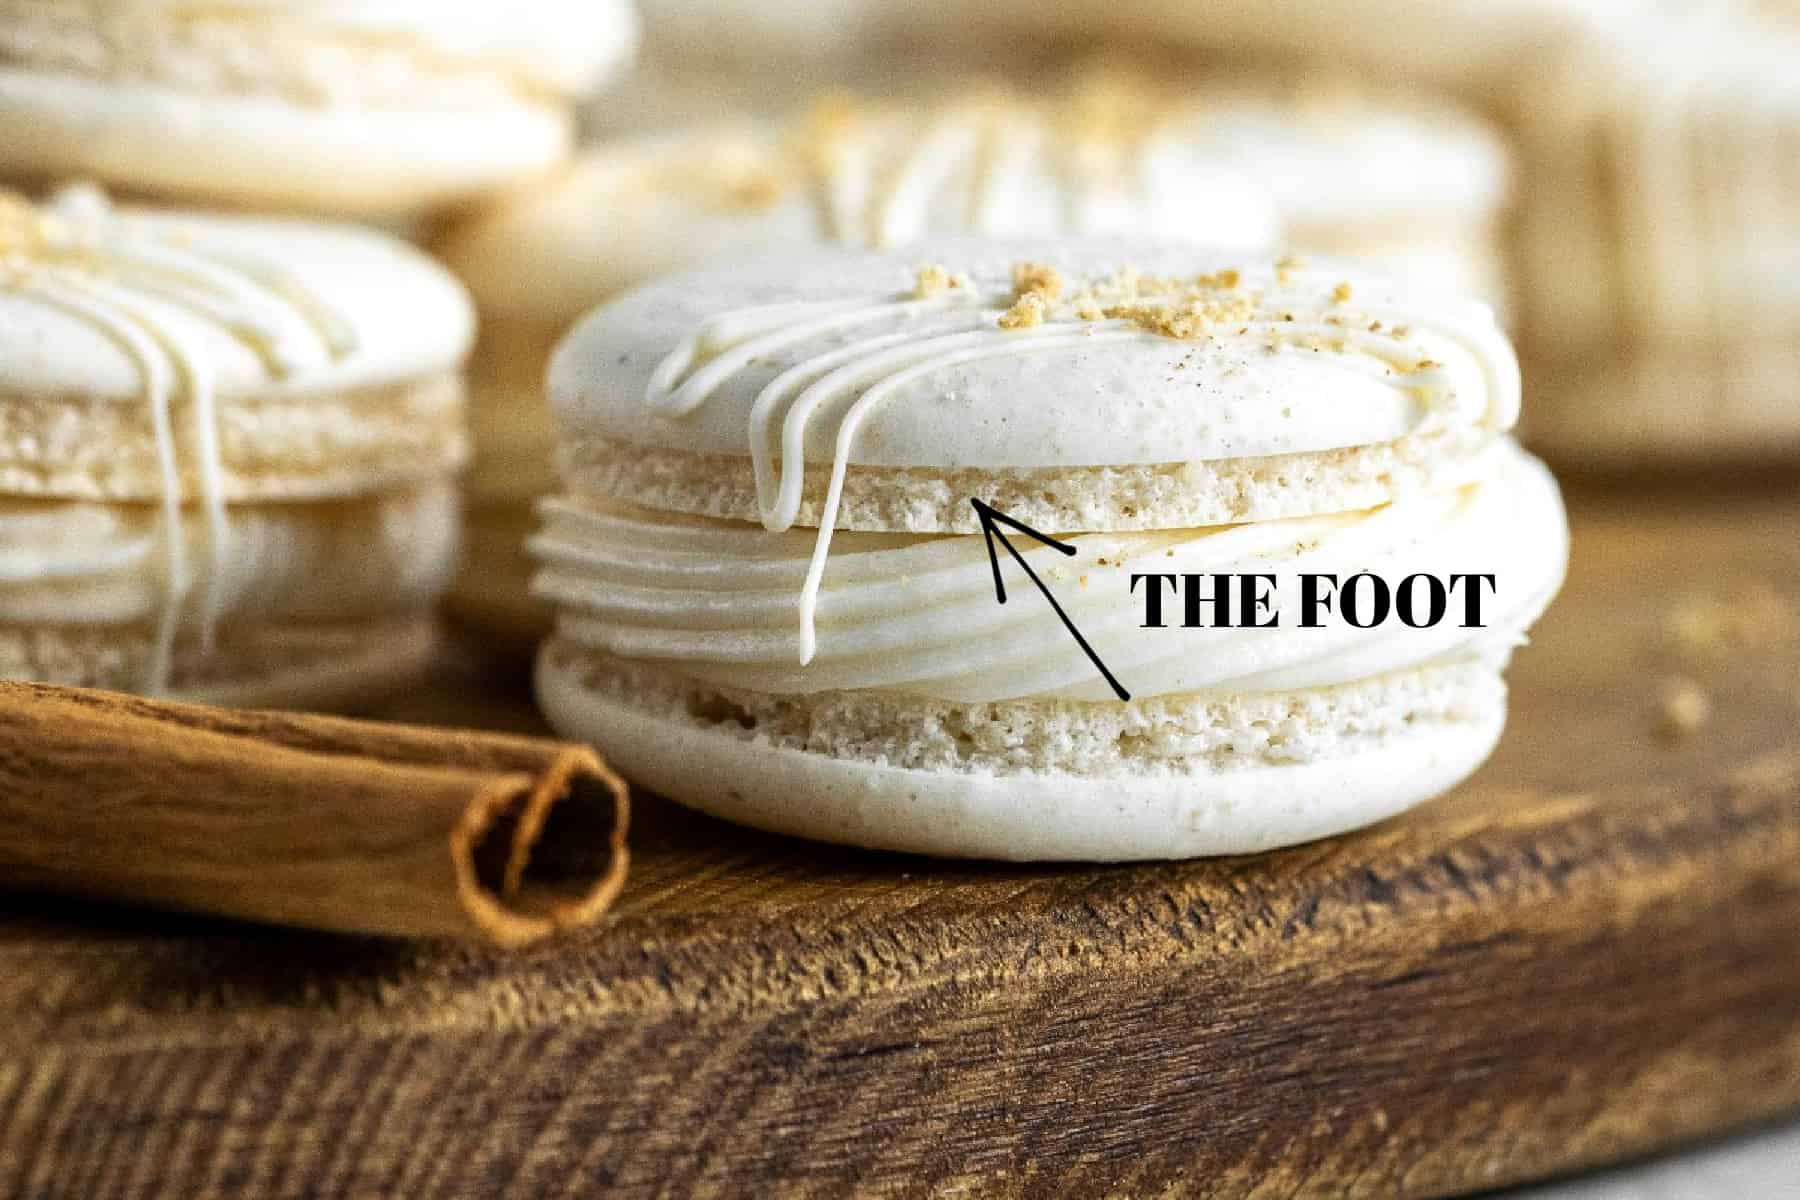 Showing the foot of a macaron